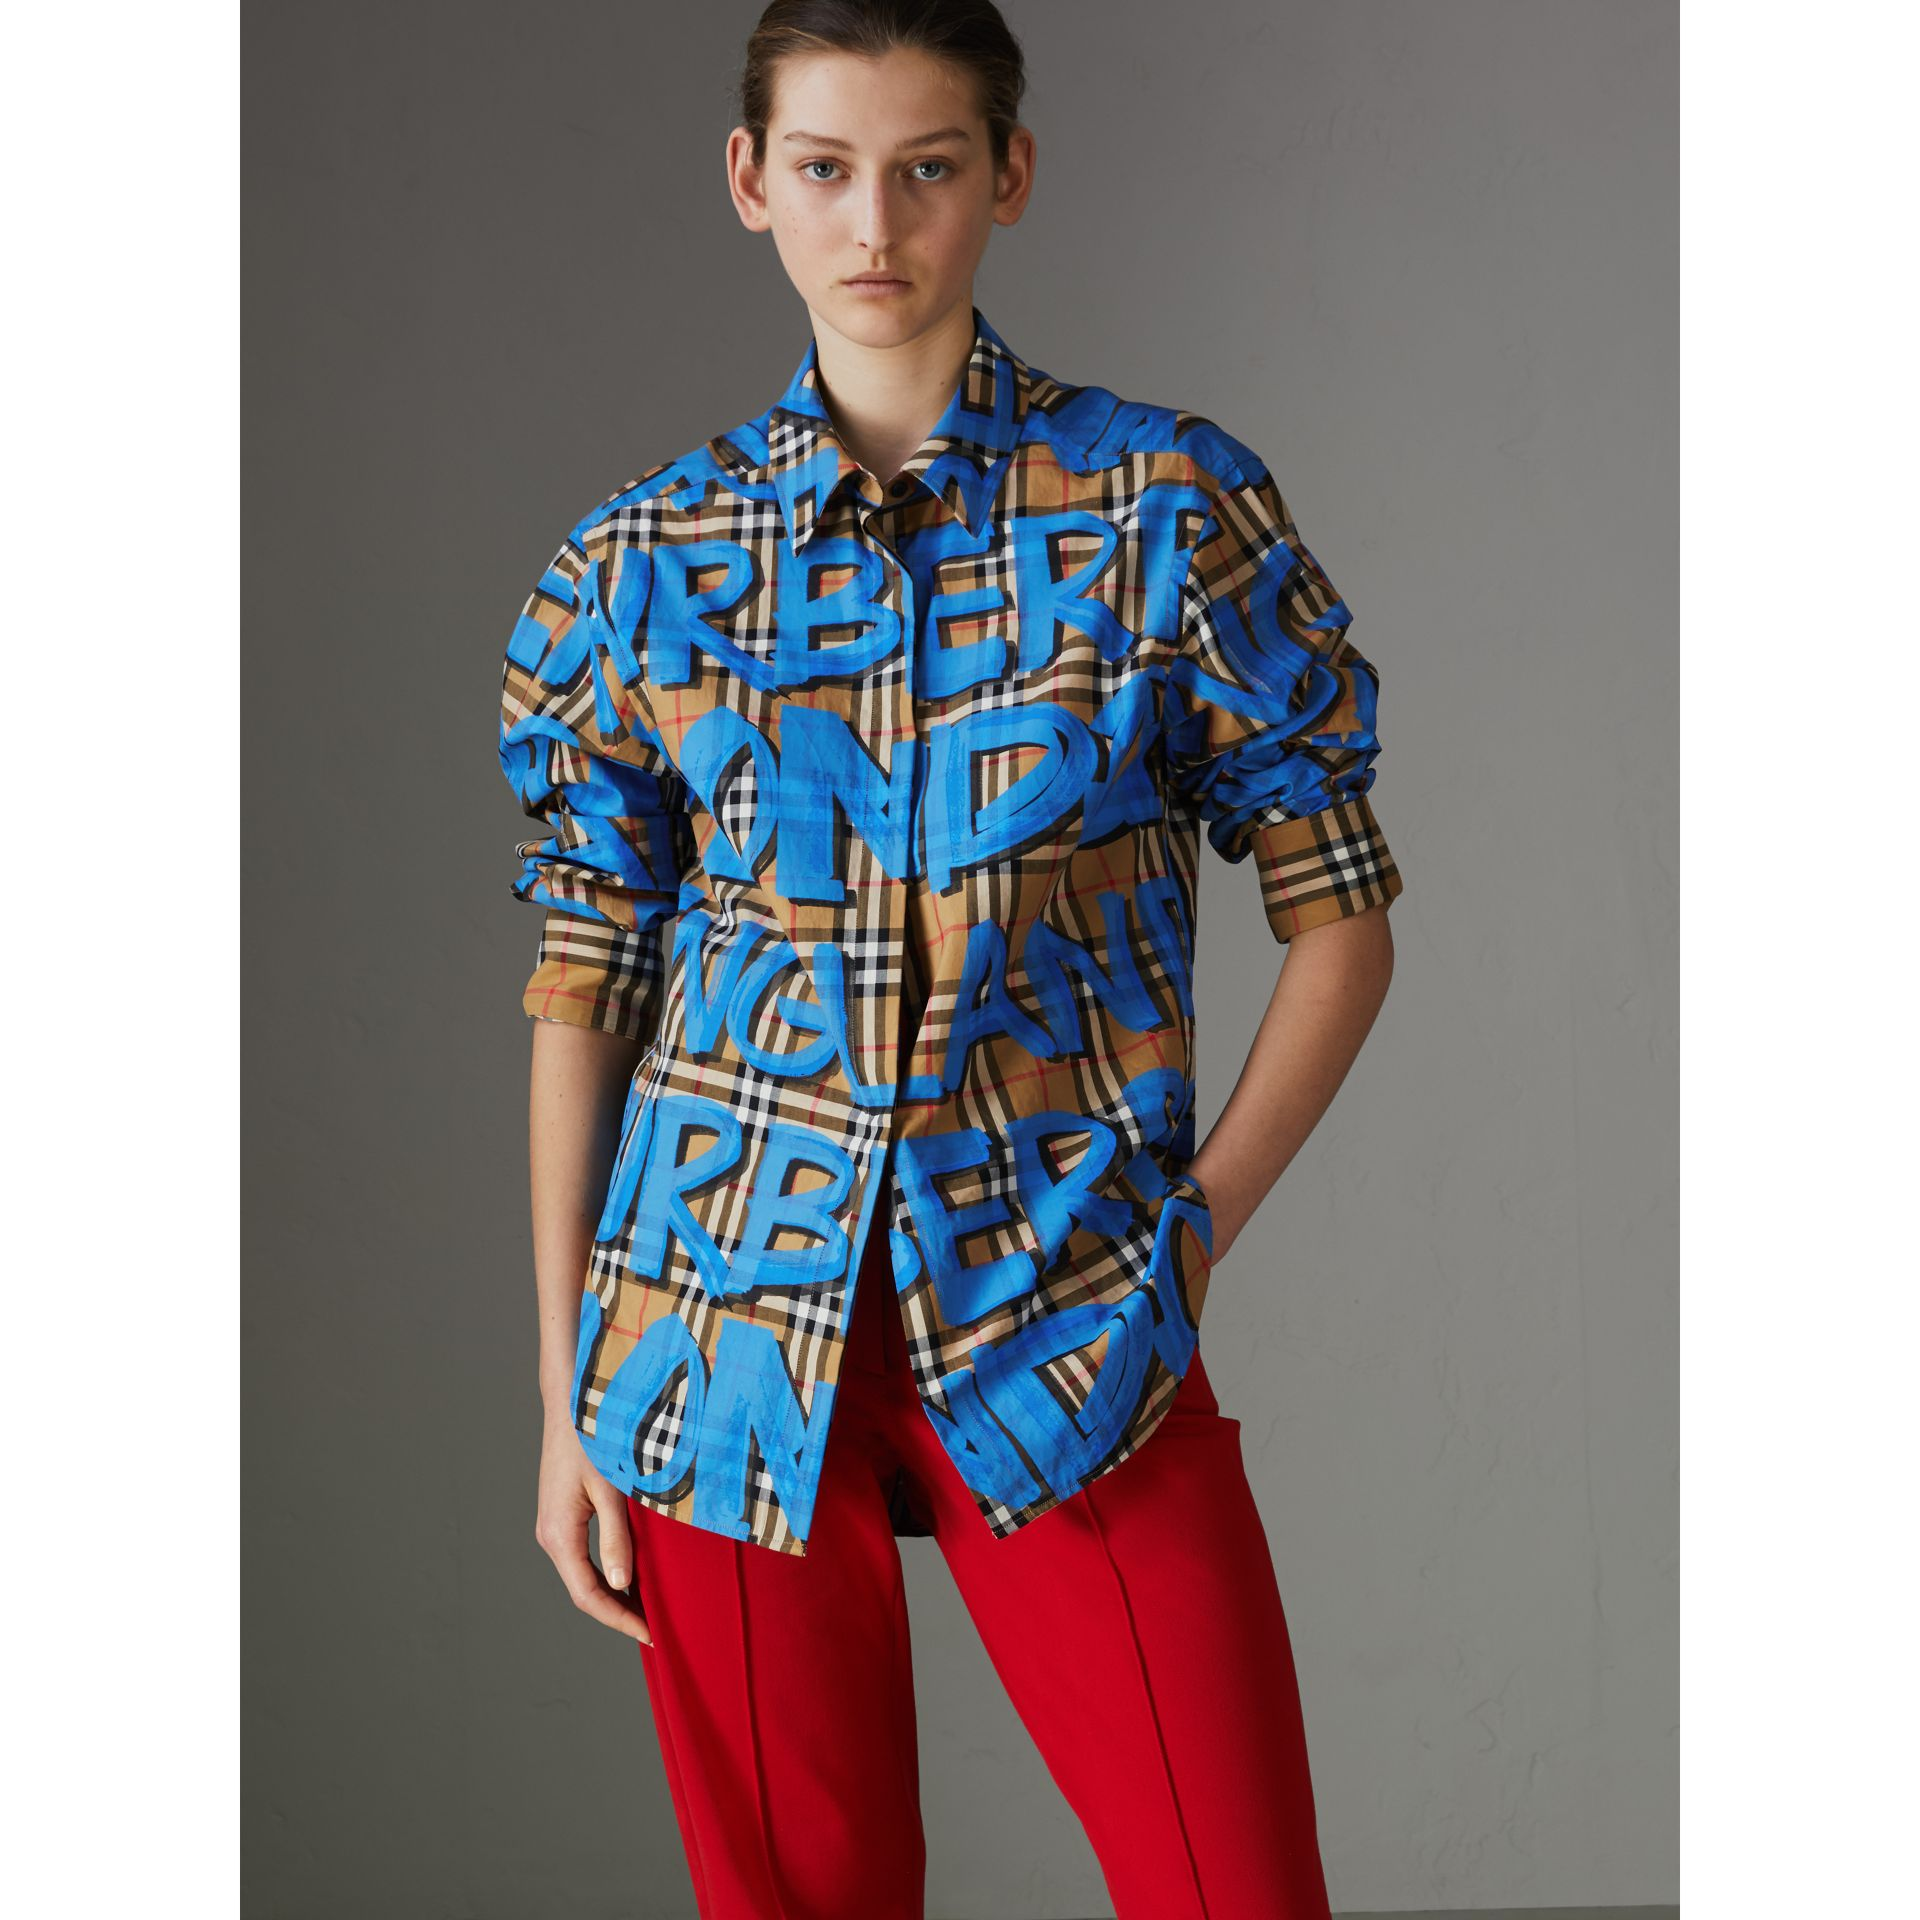 Graffiti Print Vintage Check Cotton Shirt in Bright Blue - Women | Burberry United Kingdom - gallery image 4